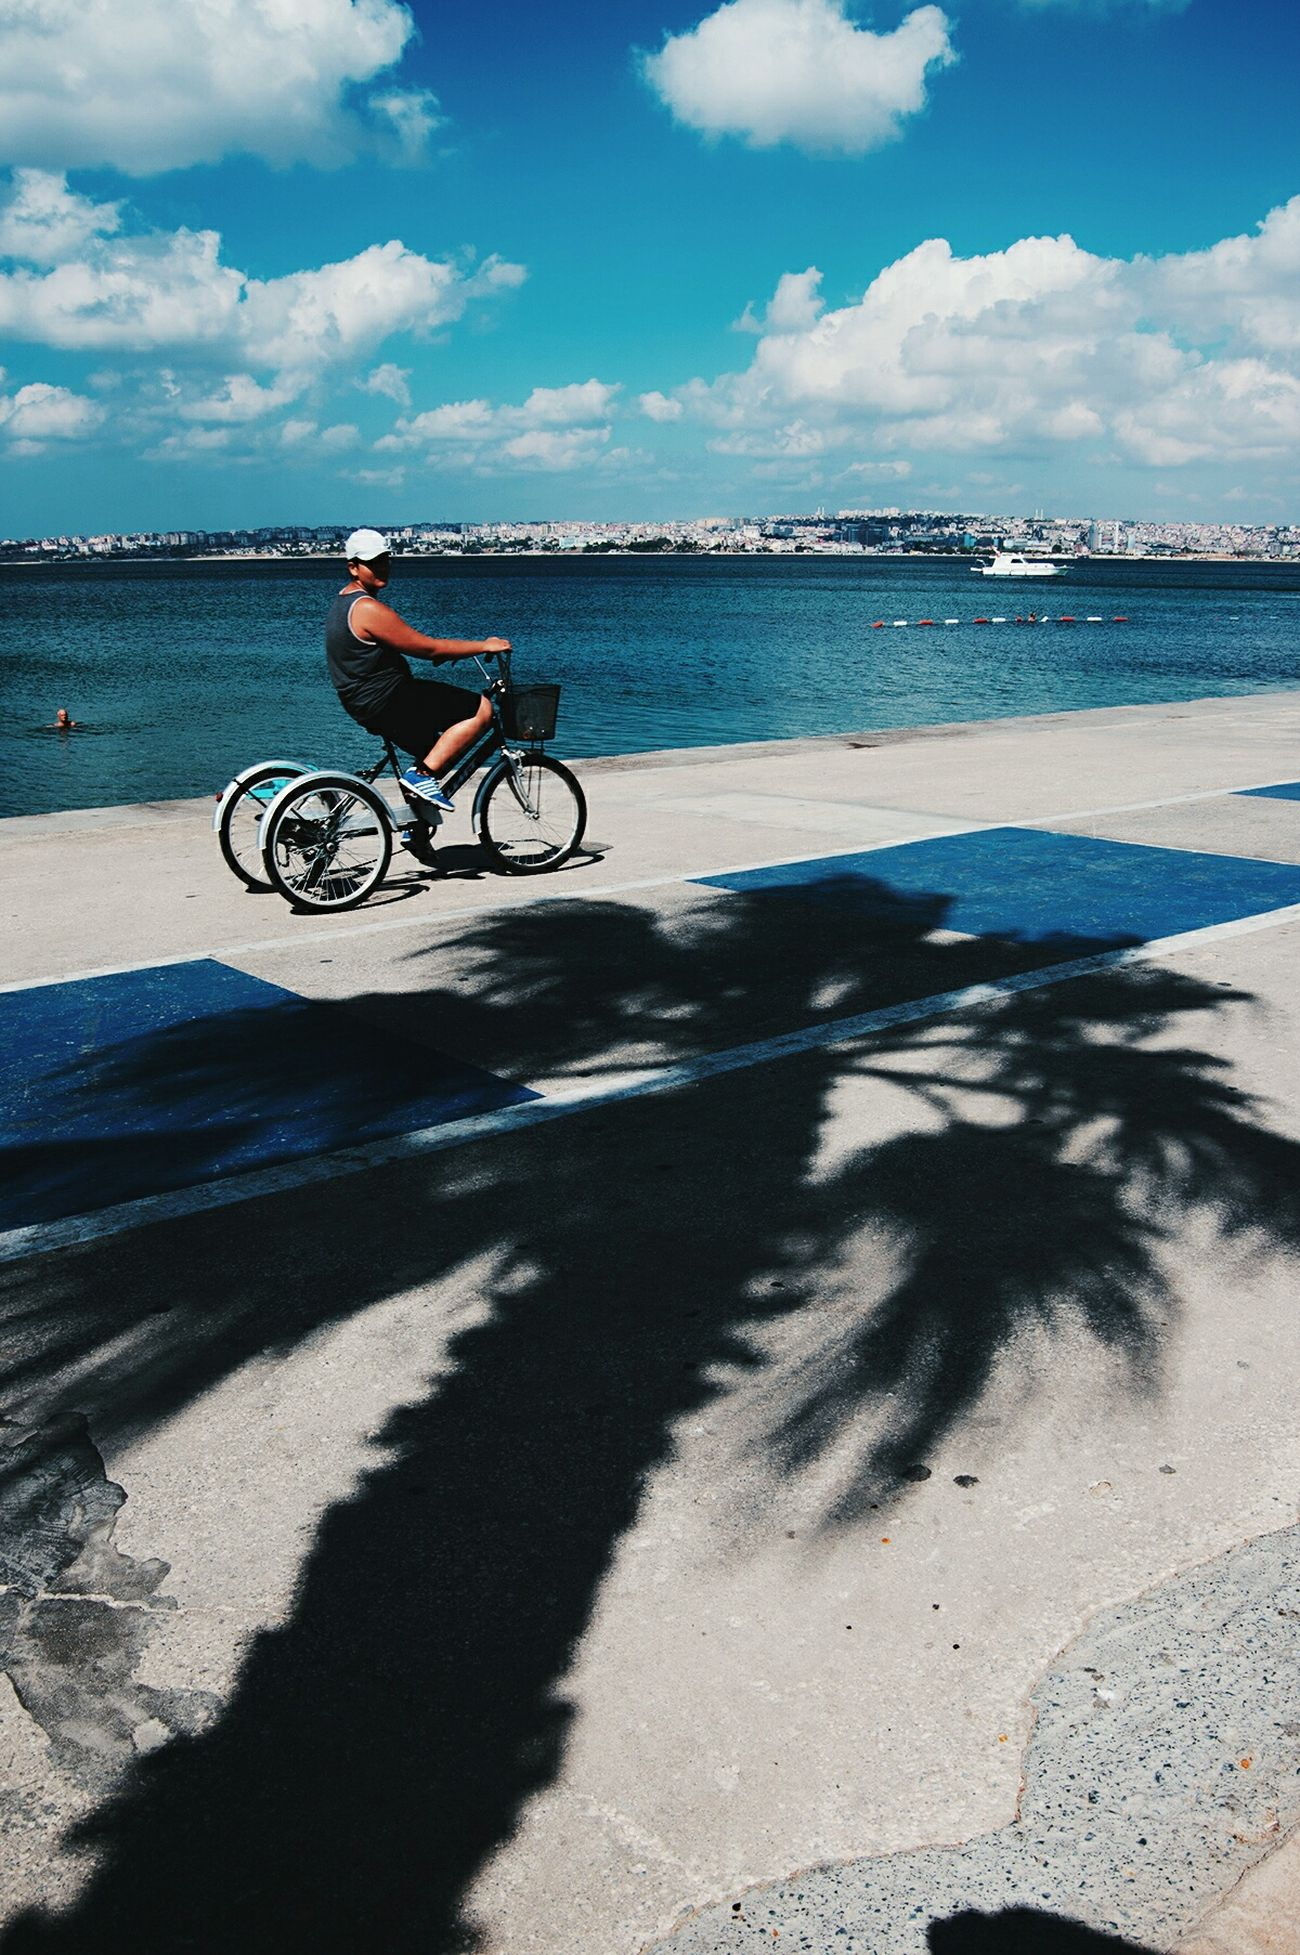 CyclingUnites Bicycle Outdoors Sky Cycling People Day Streetphotography Street Life Istanbul Check This Out Istanbulstreetphotography Outdoors Life Streetdreamsmag Istanbuldayasam Peopleandplaces Miles Away The City Light The Street Photographer - 2017 EyeEm Awards